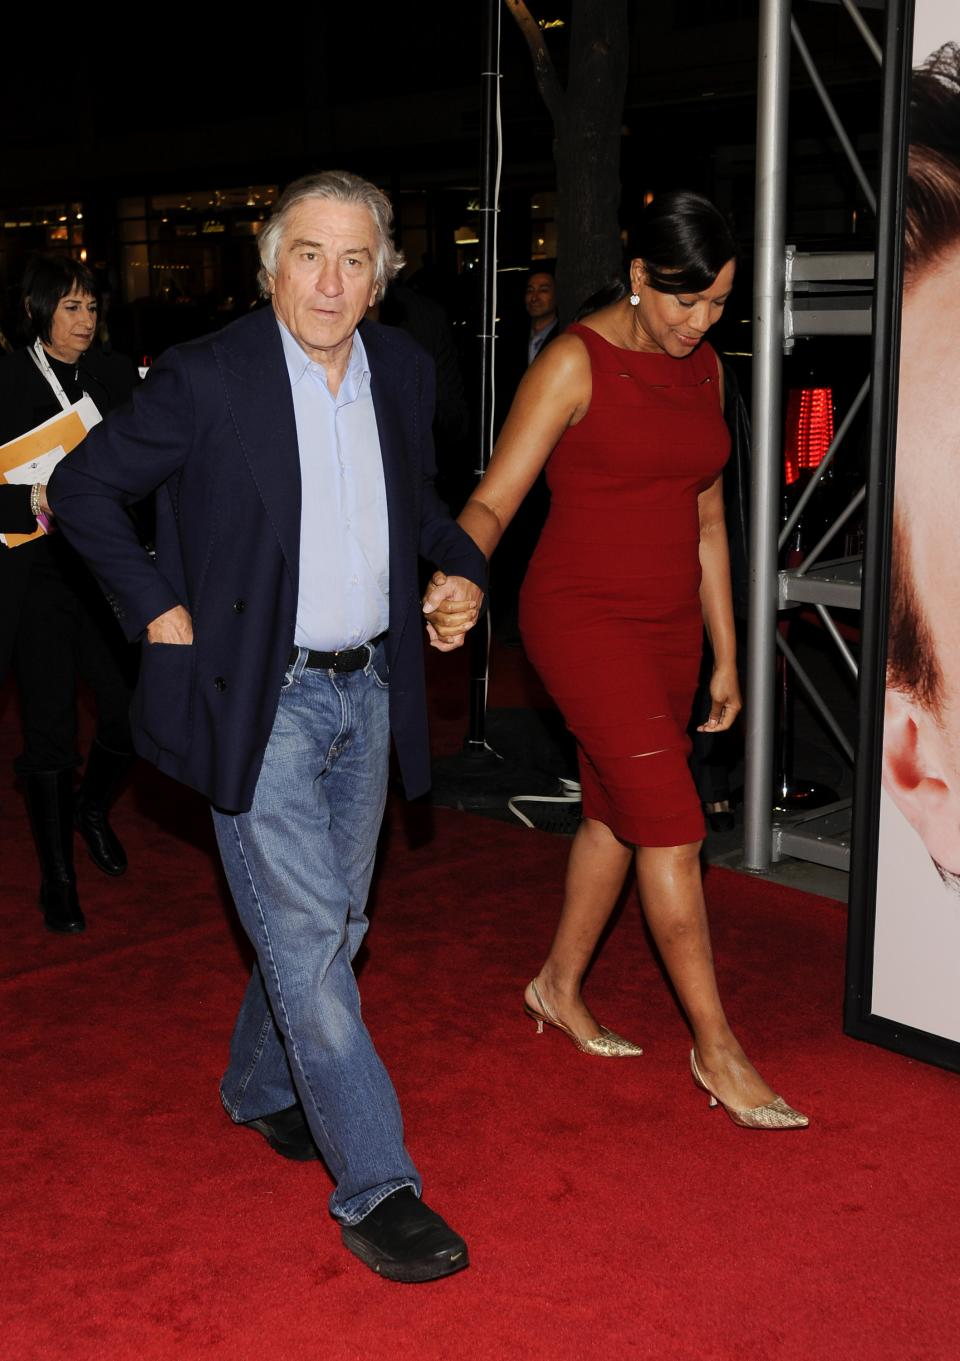 "Actor Robert De Niro and wife Grace Hightower attend the Tribeca Film Festival opening night premiere of ""The Five-Year Engagement"" at the Ziegfeld Theatre on Wednesday, April 18, 2012 in New York. (AP Photo/Evan Agostini)"